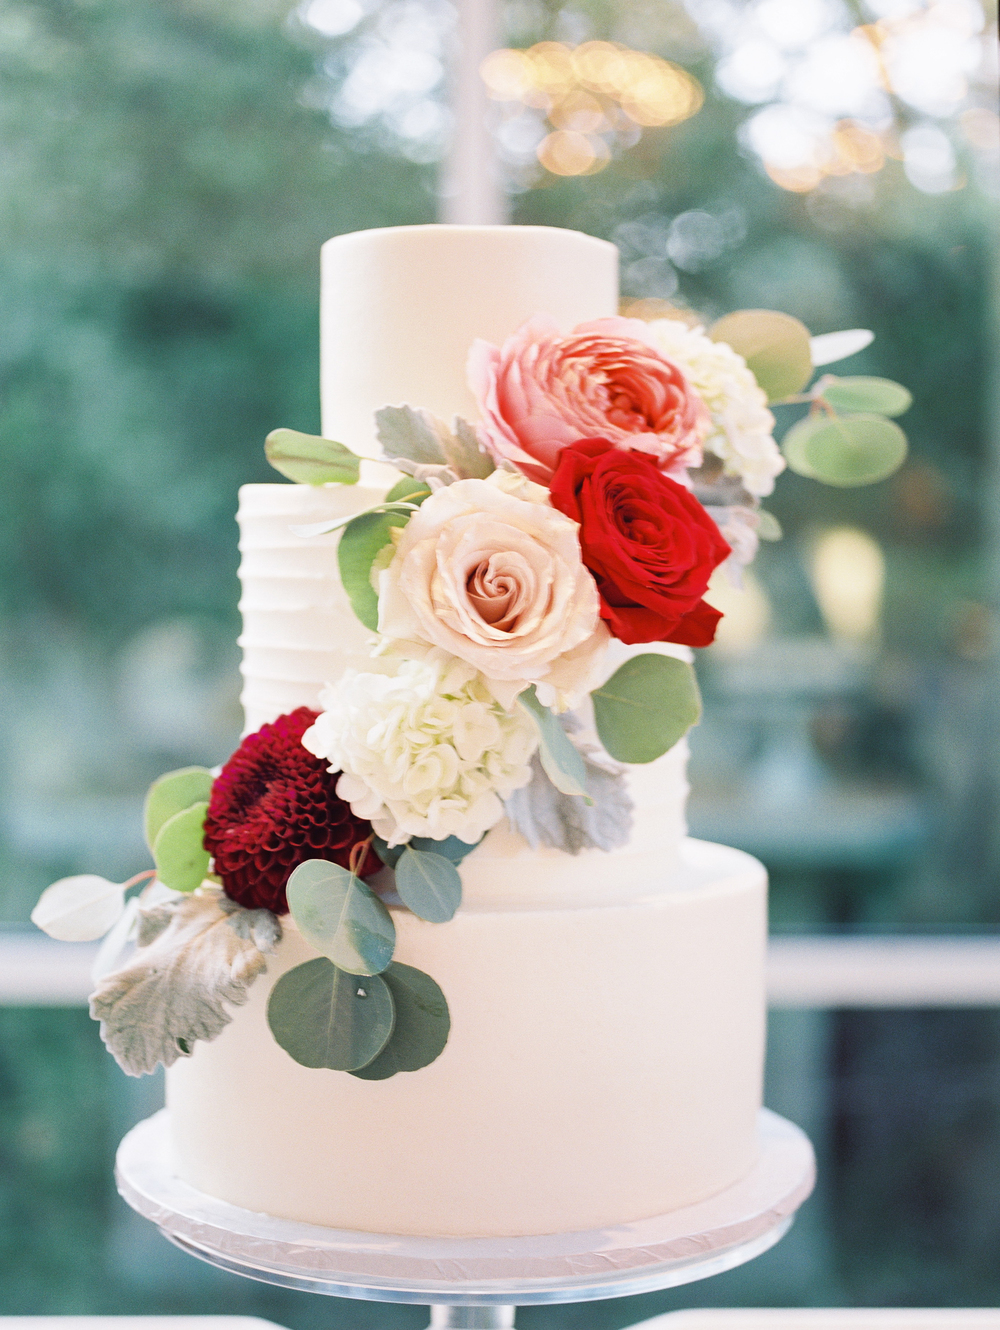 custom-wedding-cake-white-texture-cascading-flowers-sugarbeesweets.jpg